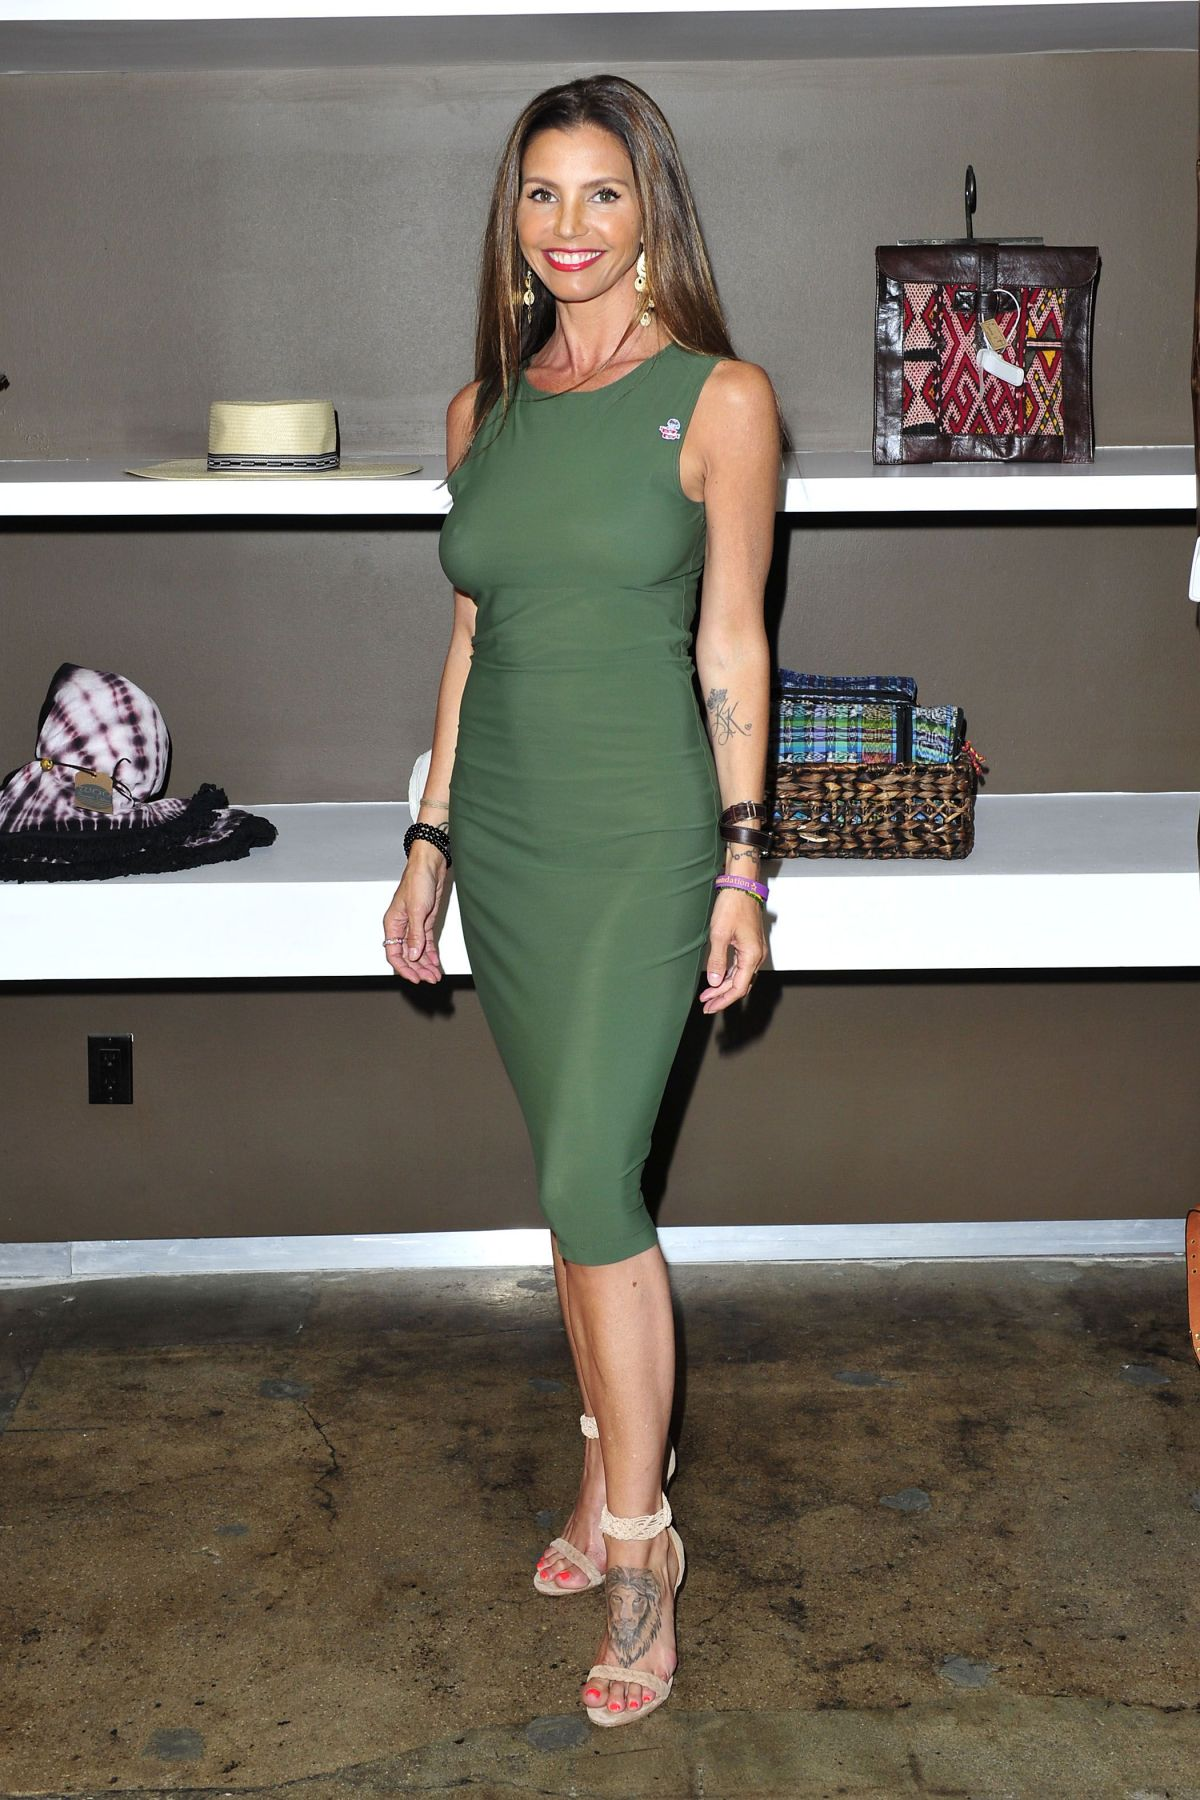 Charisma Carpenter At Live Fast Die Hot book release party In Beverly Hills